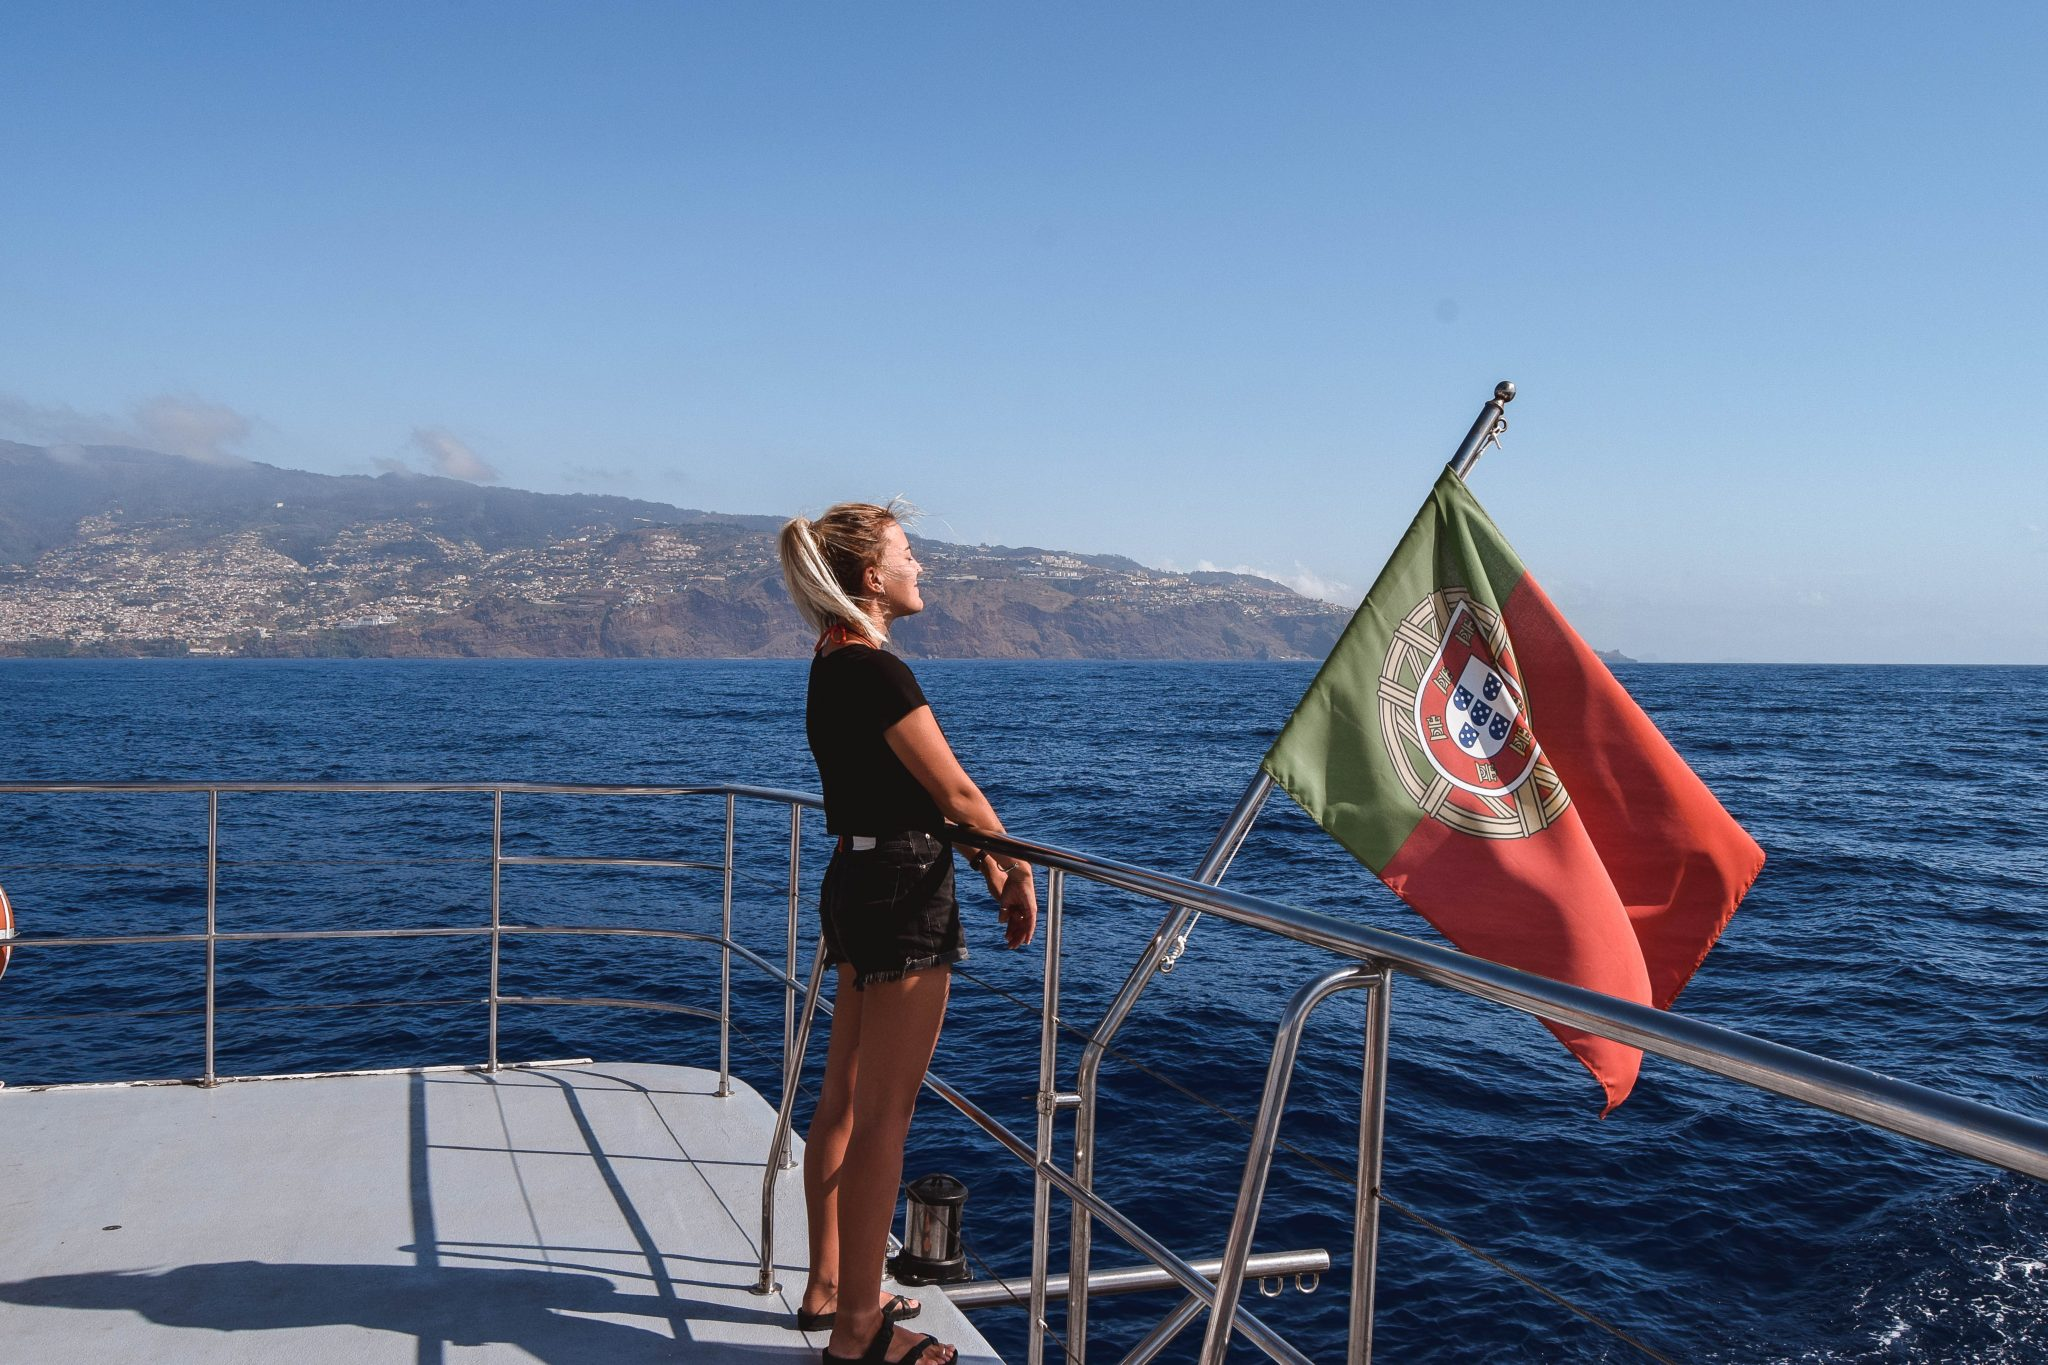 Wanderers & Warriors - Charlie & Lauren UK Travel Couple - Whale Watching In Madeira Whale Watching VMT Madeira